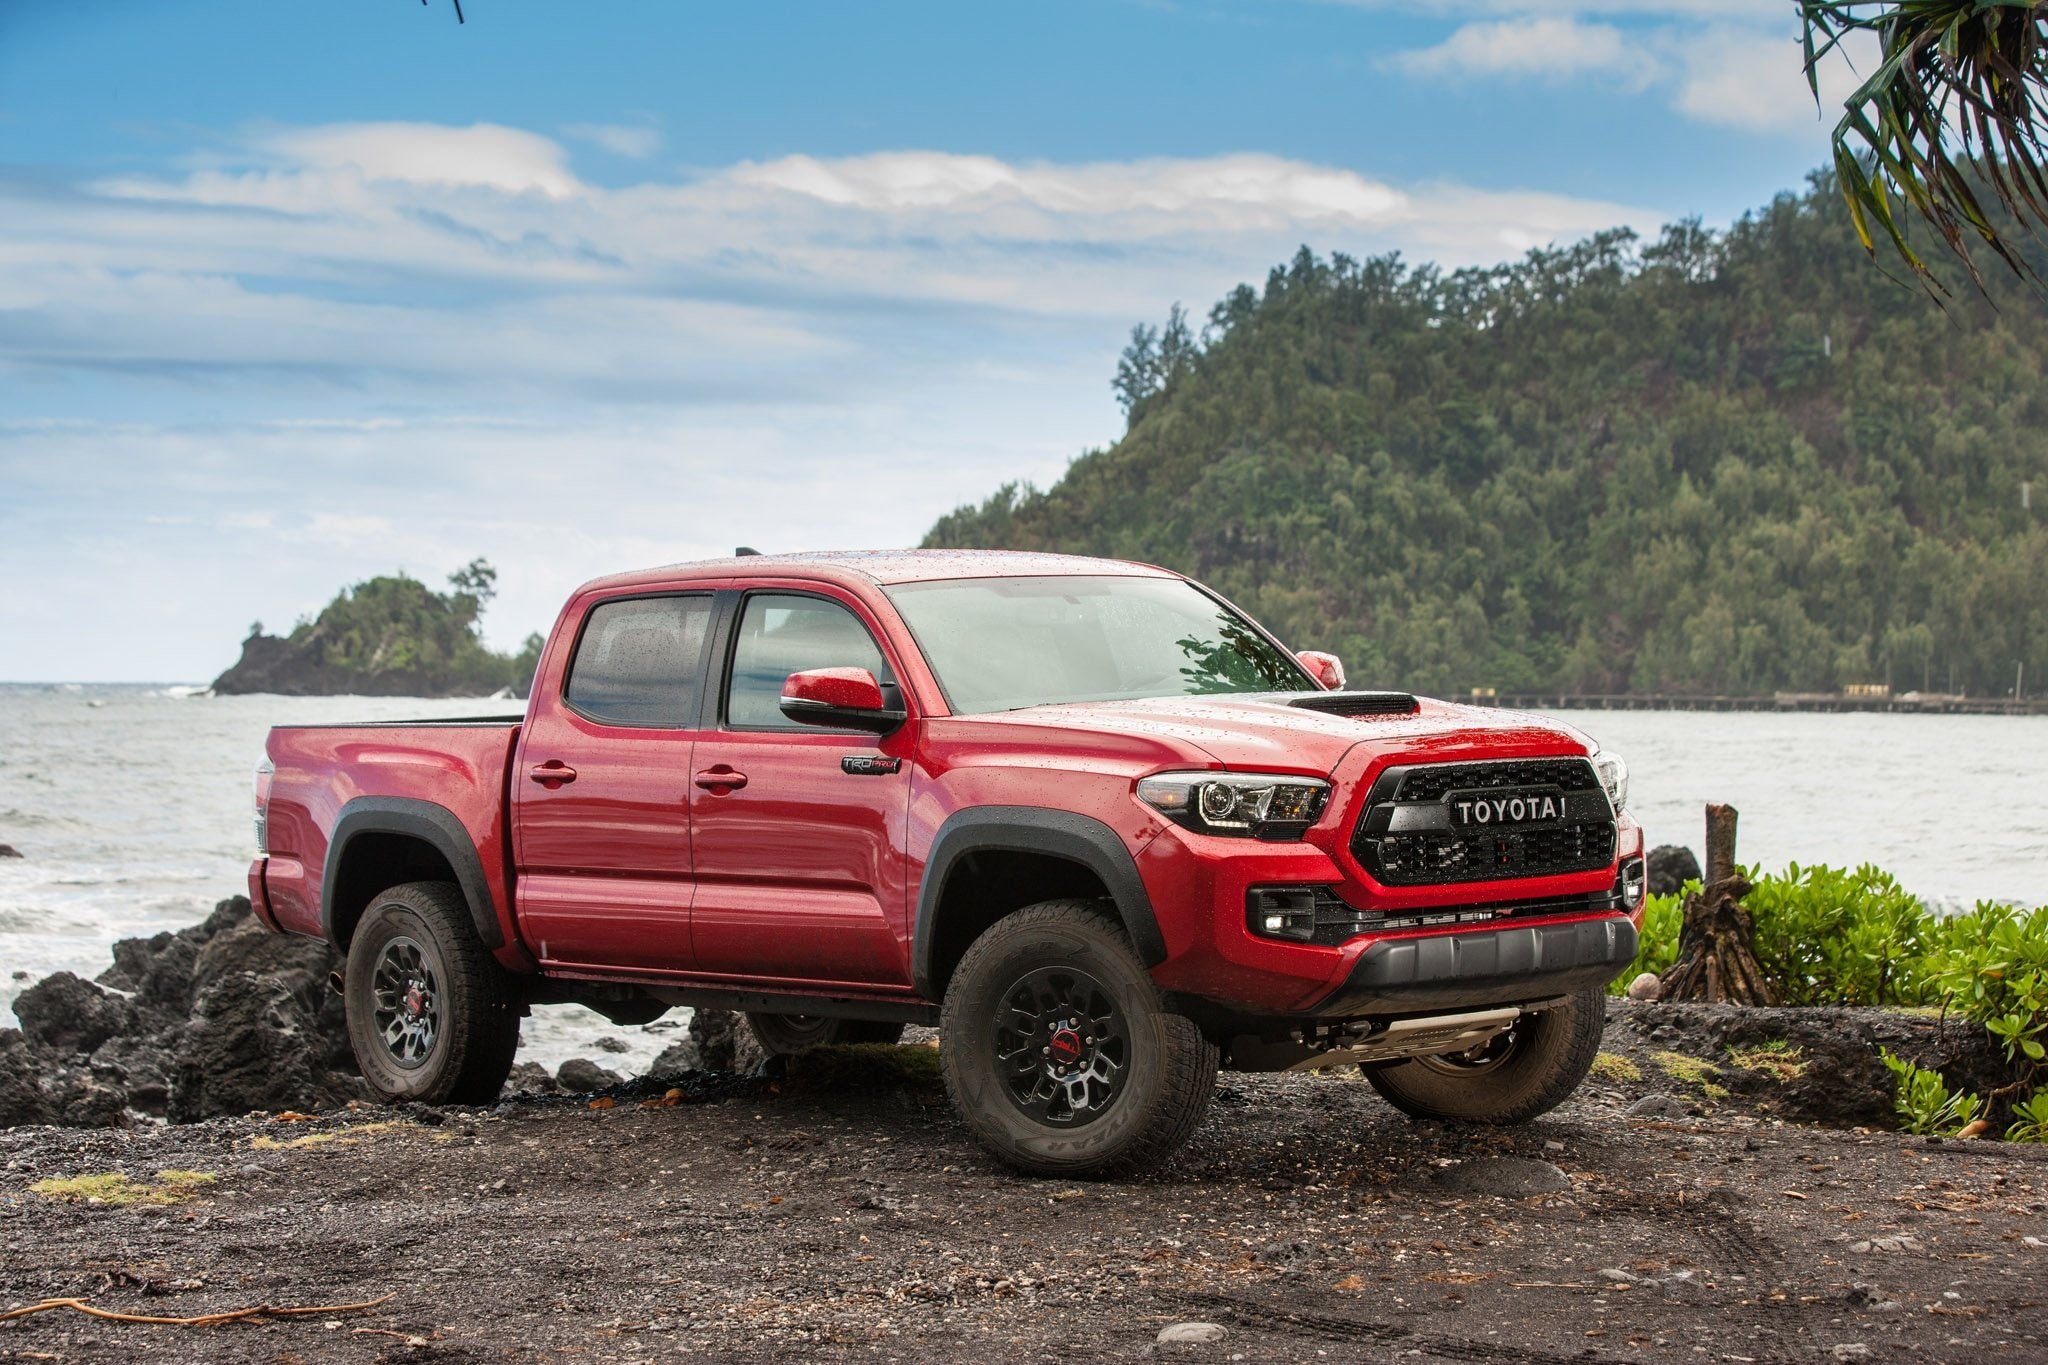 2021 Toyota Tacoma Performance And New Engine In 2020 Toyota Tacoma Toyota Tacoma Trd Toyota